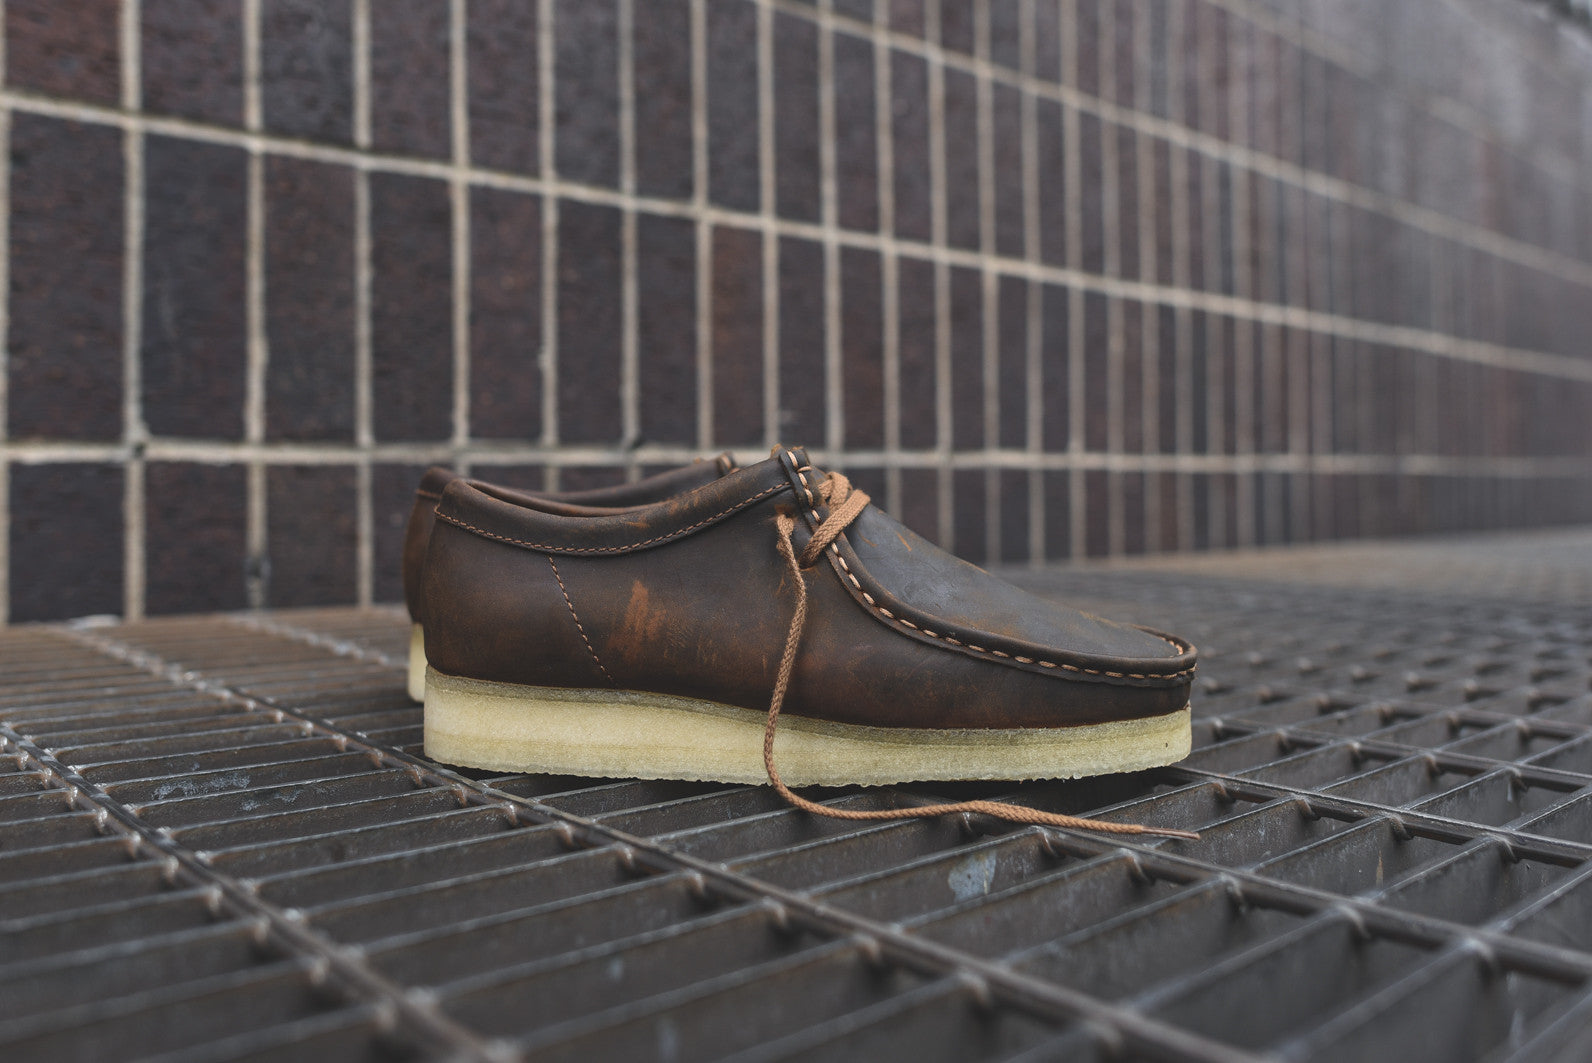 Clarks Wallabee Low - Beeswax